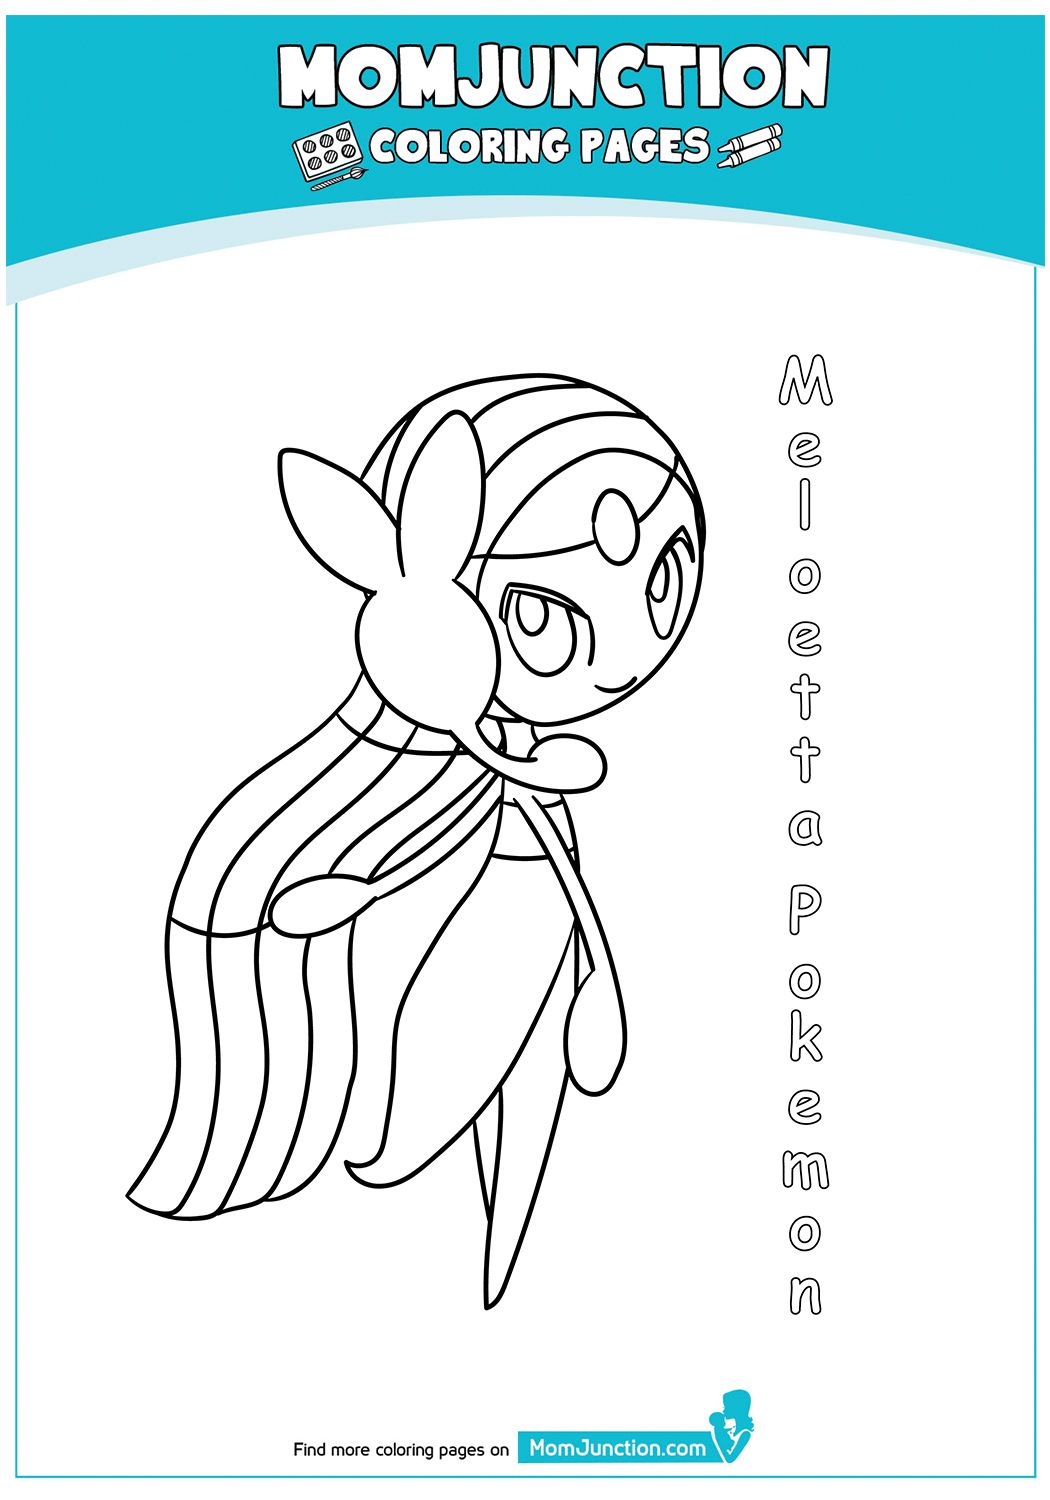 print coloring image MomJunction Coloring pages, Go